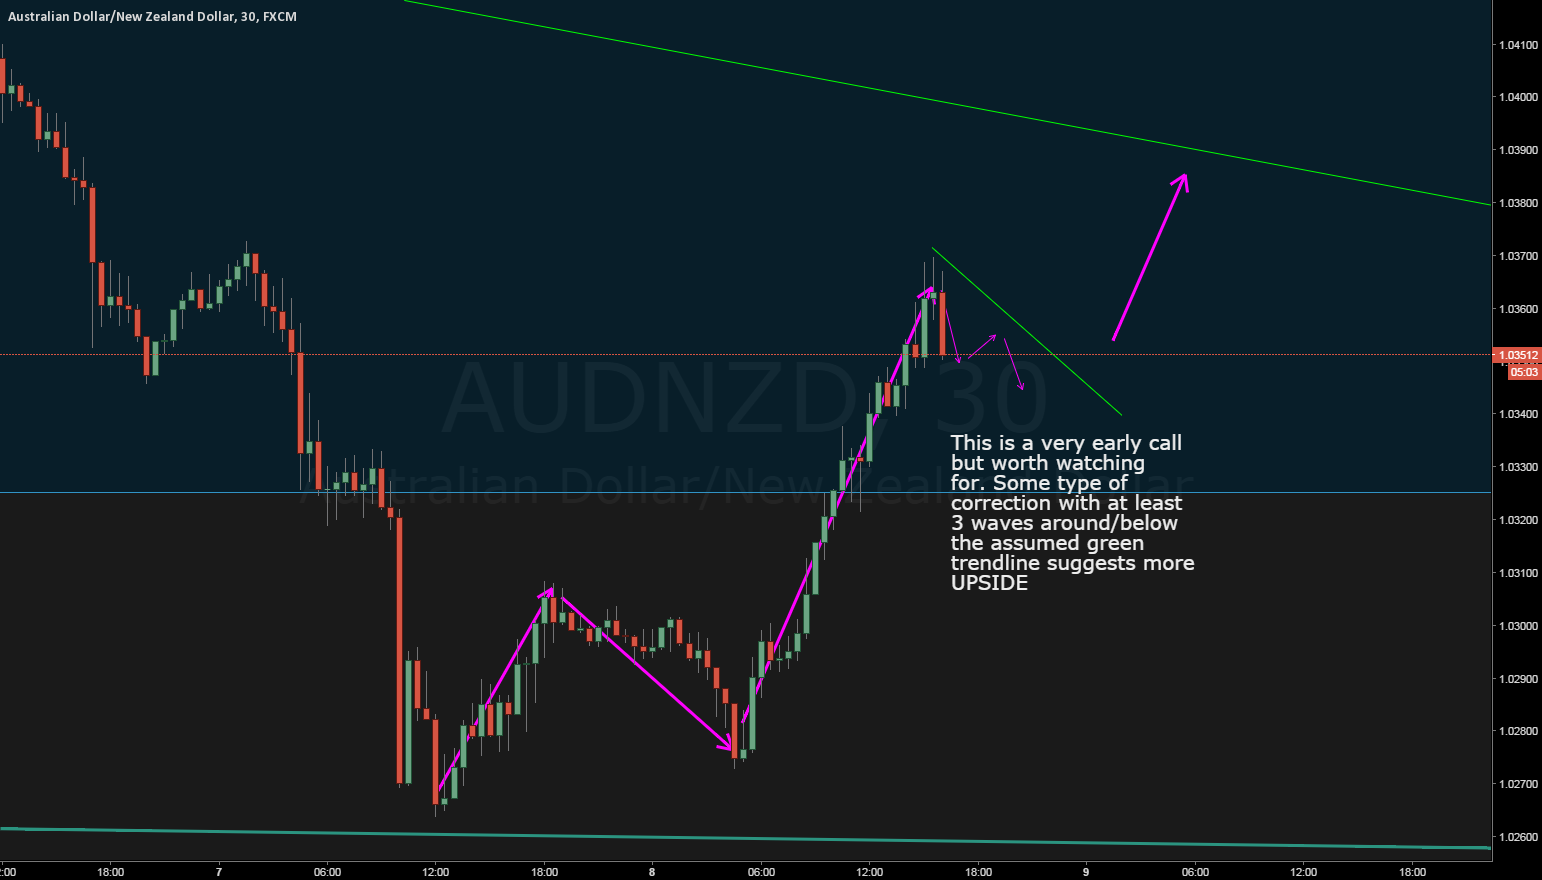 AUDNZD looking bullish after break of correction